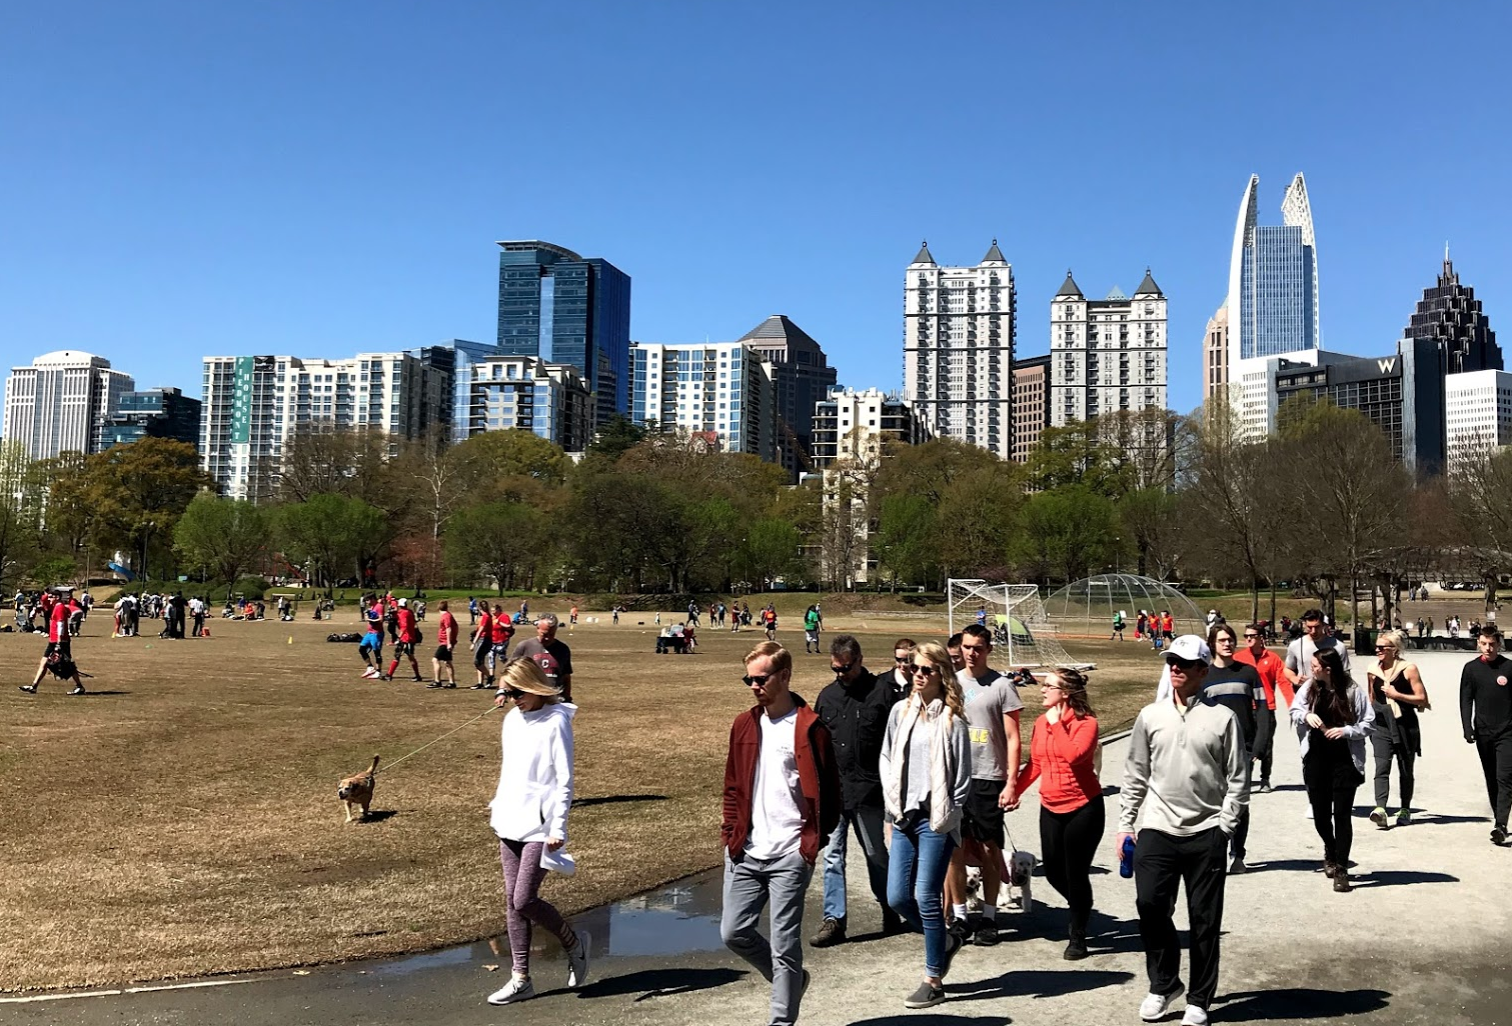 Piedmont Park has not only great pathways for strolling but also a huge area with well-use playing fields.